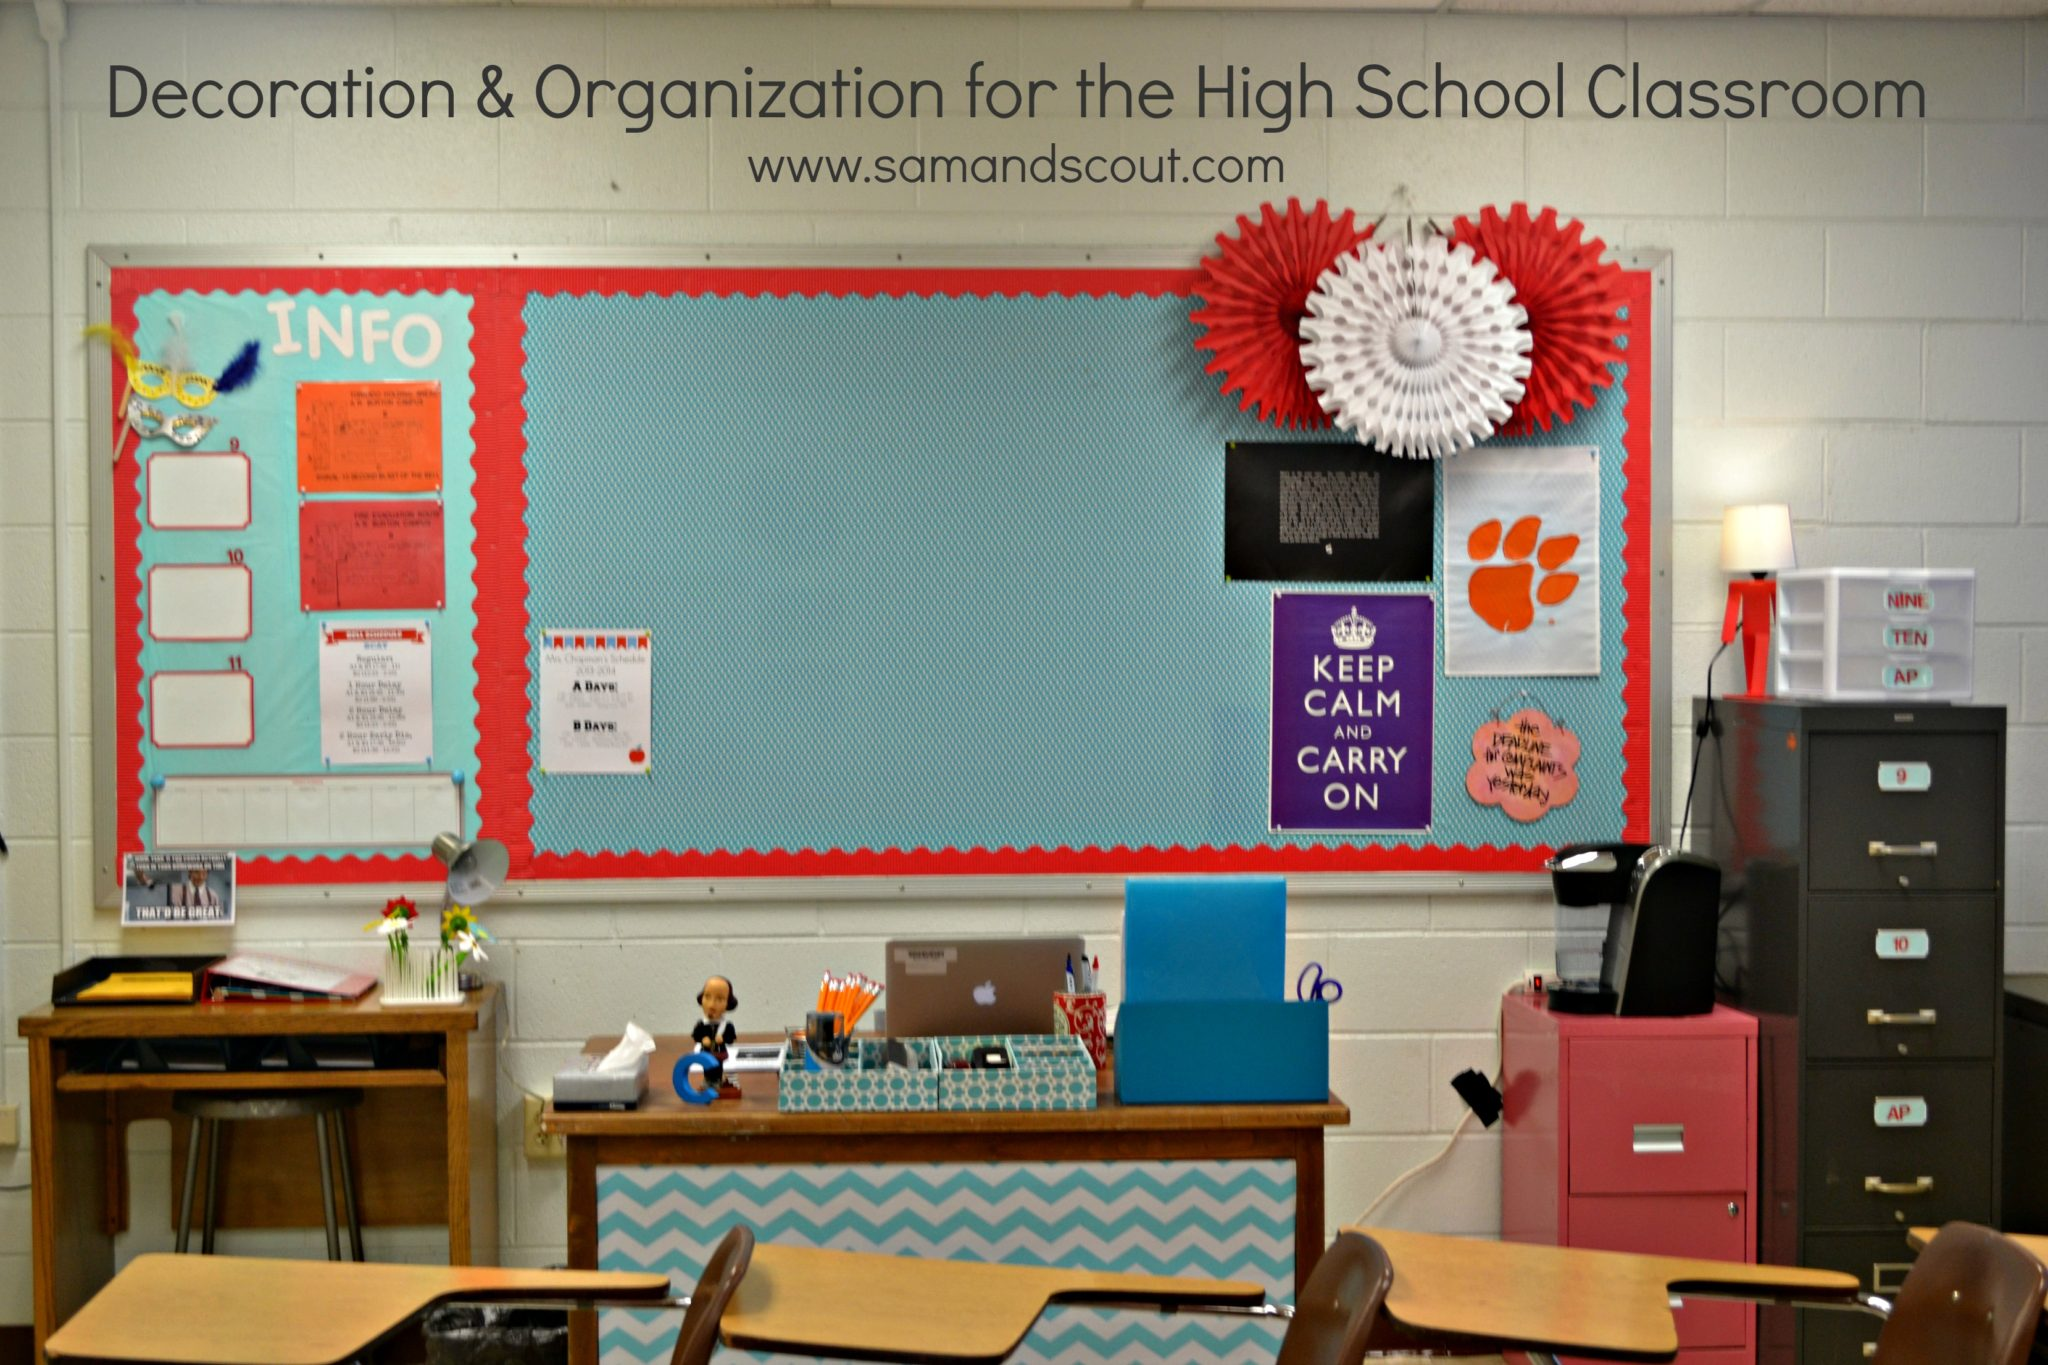 Classroom Design Ideas For High School : Creative classroom decorating ideas for middle school